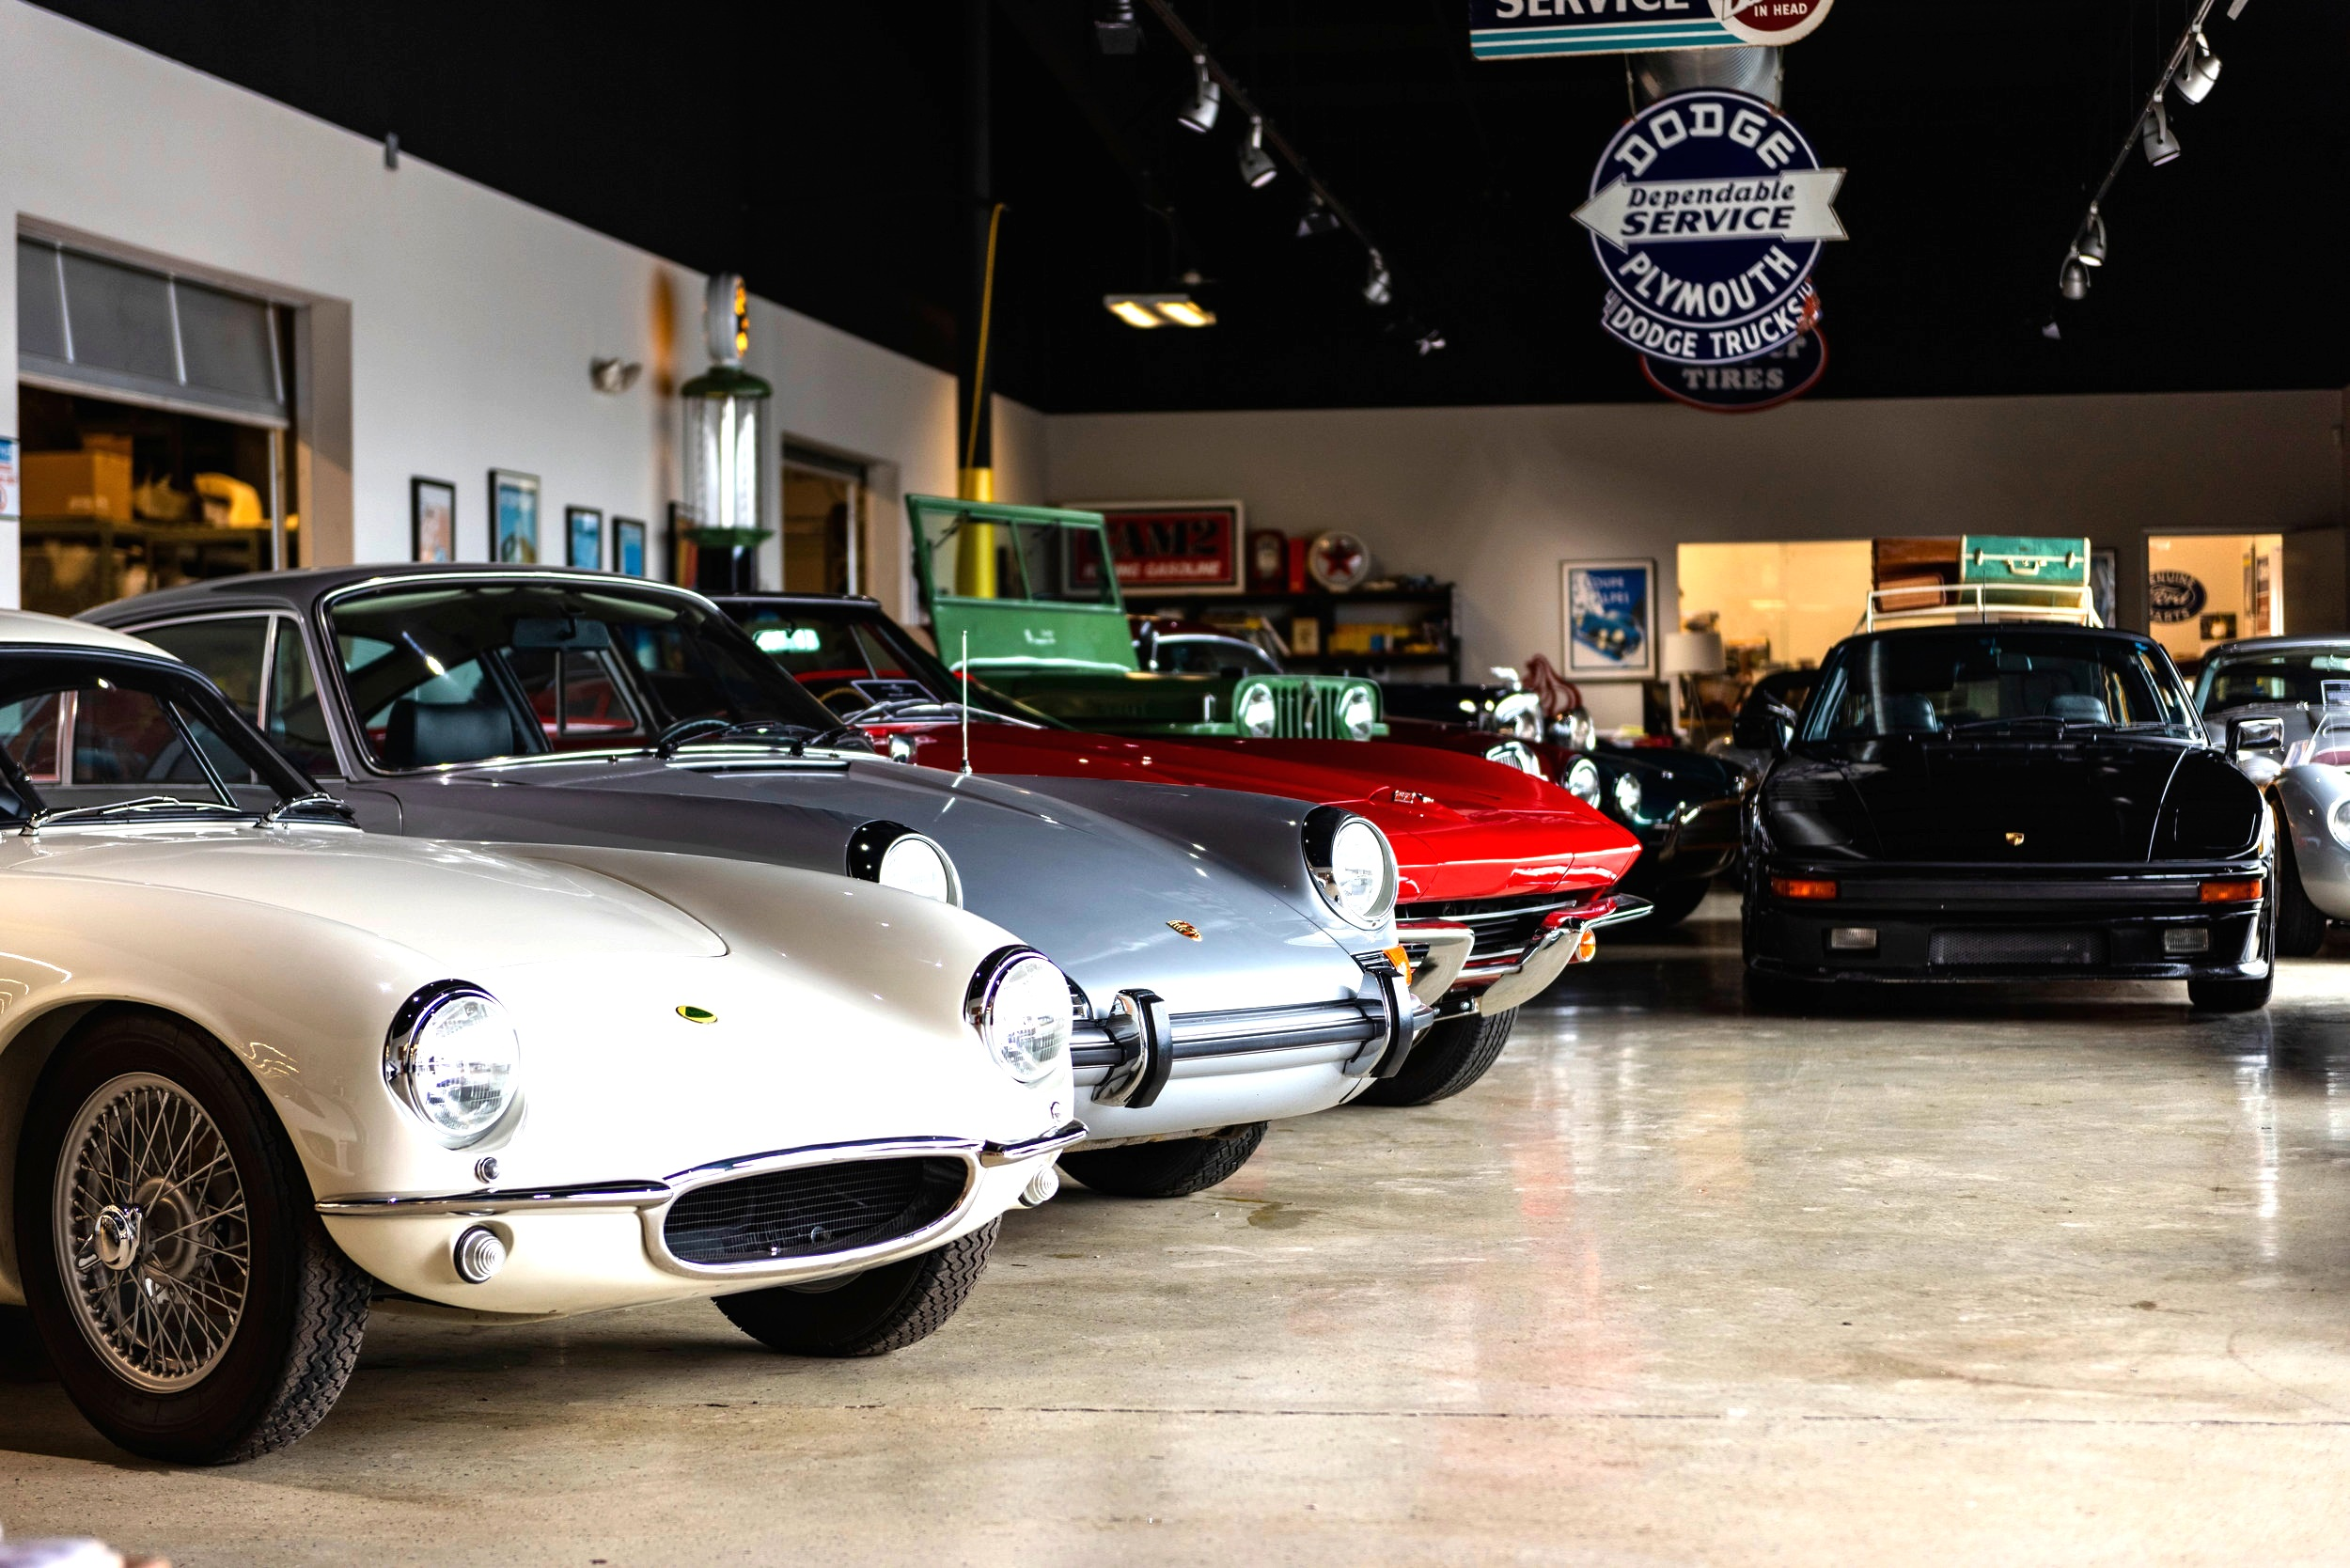 Vehicle Sales - Whether looking for a new project car or a freshly restored concours winner, our sales staff are among the most trusted in the business.